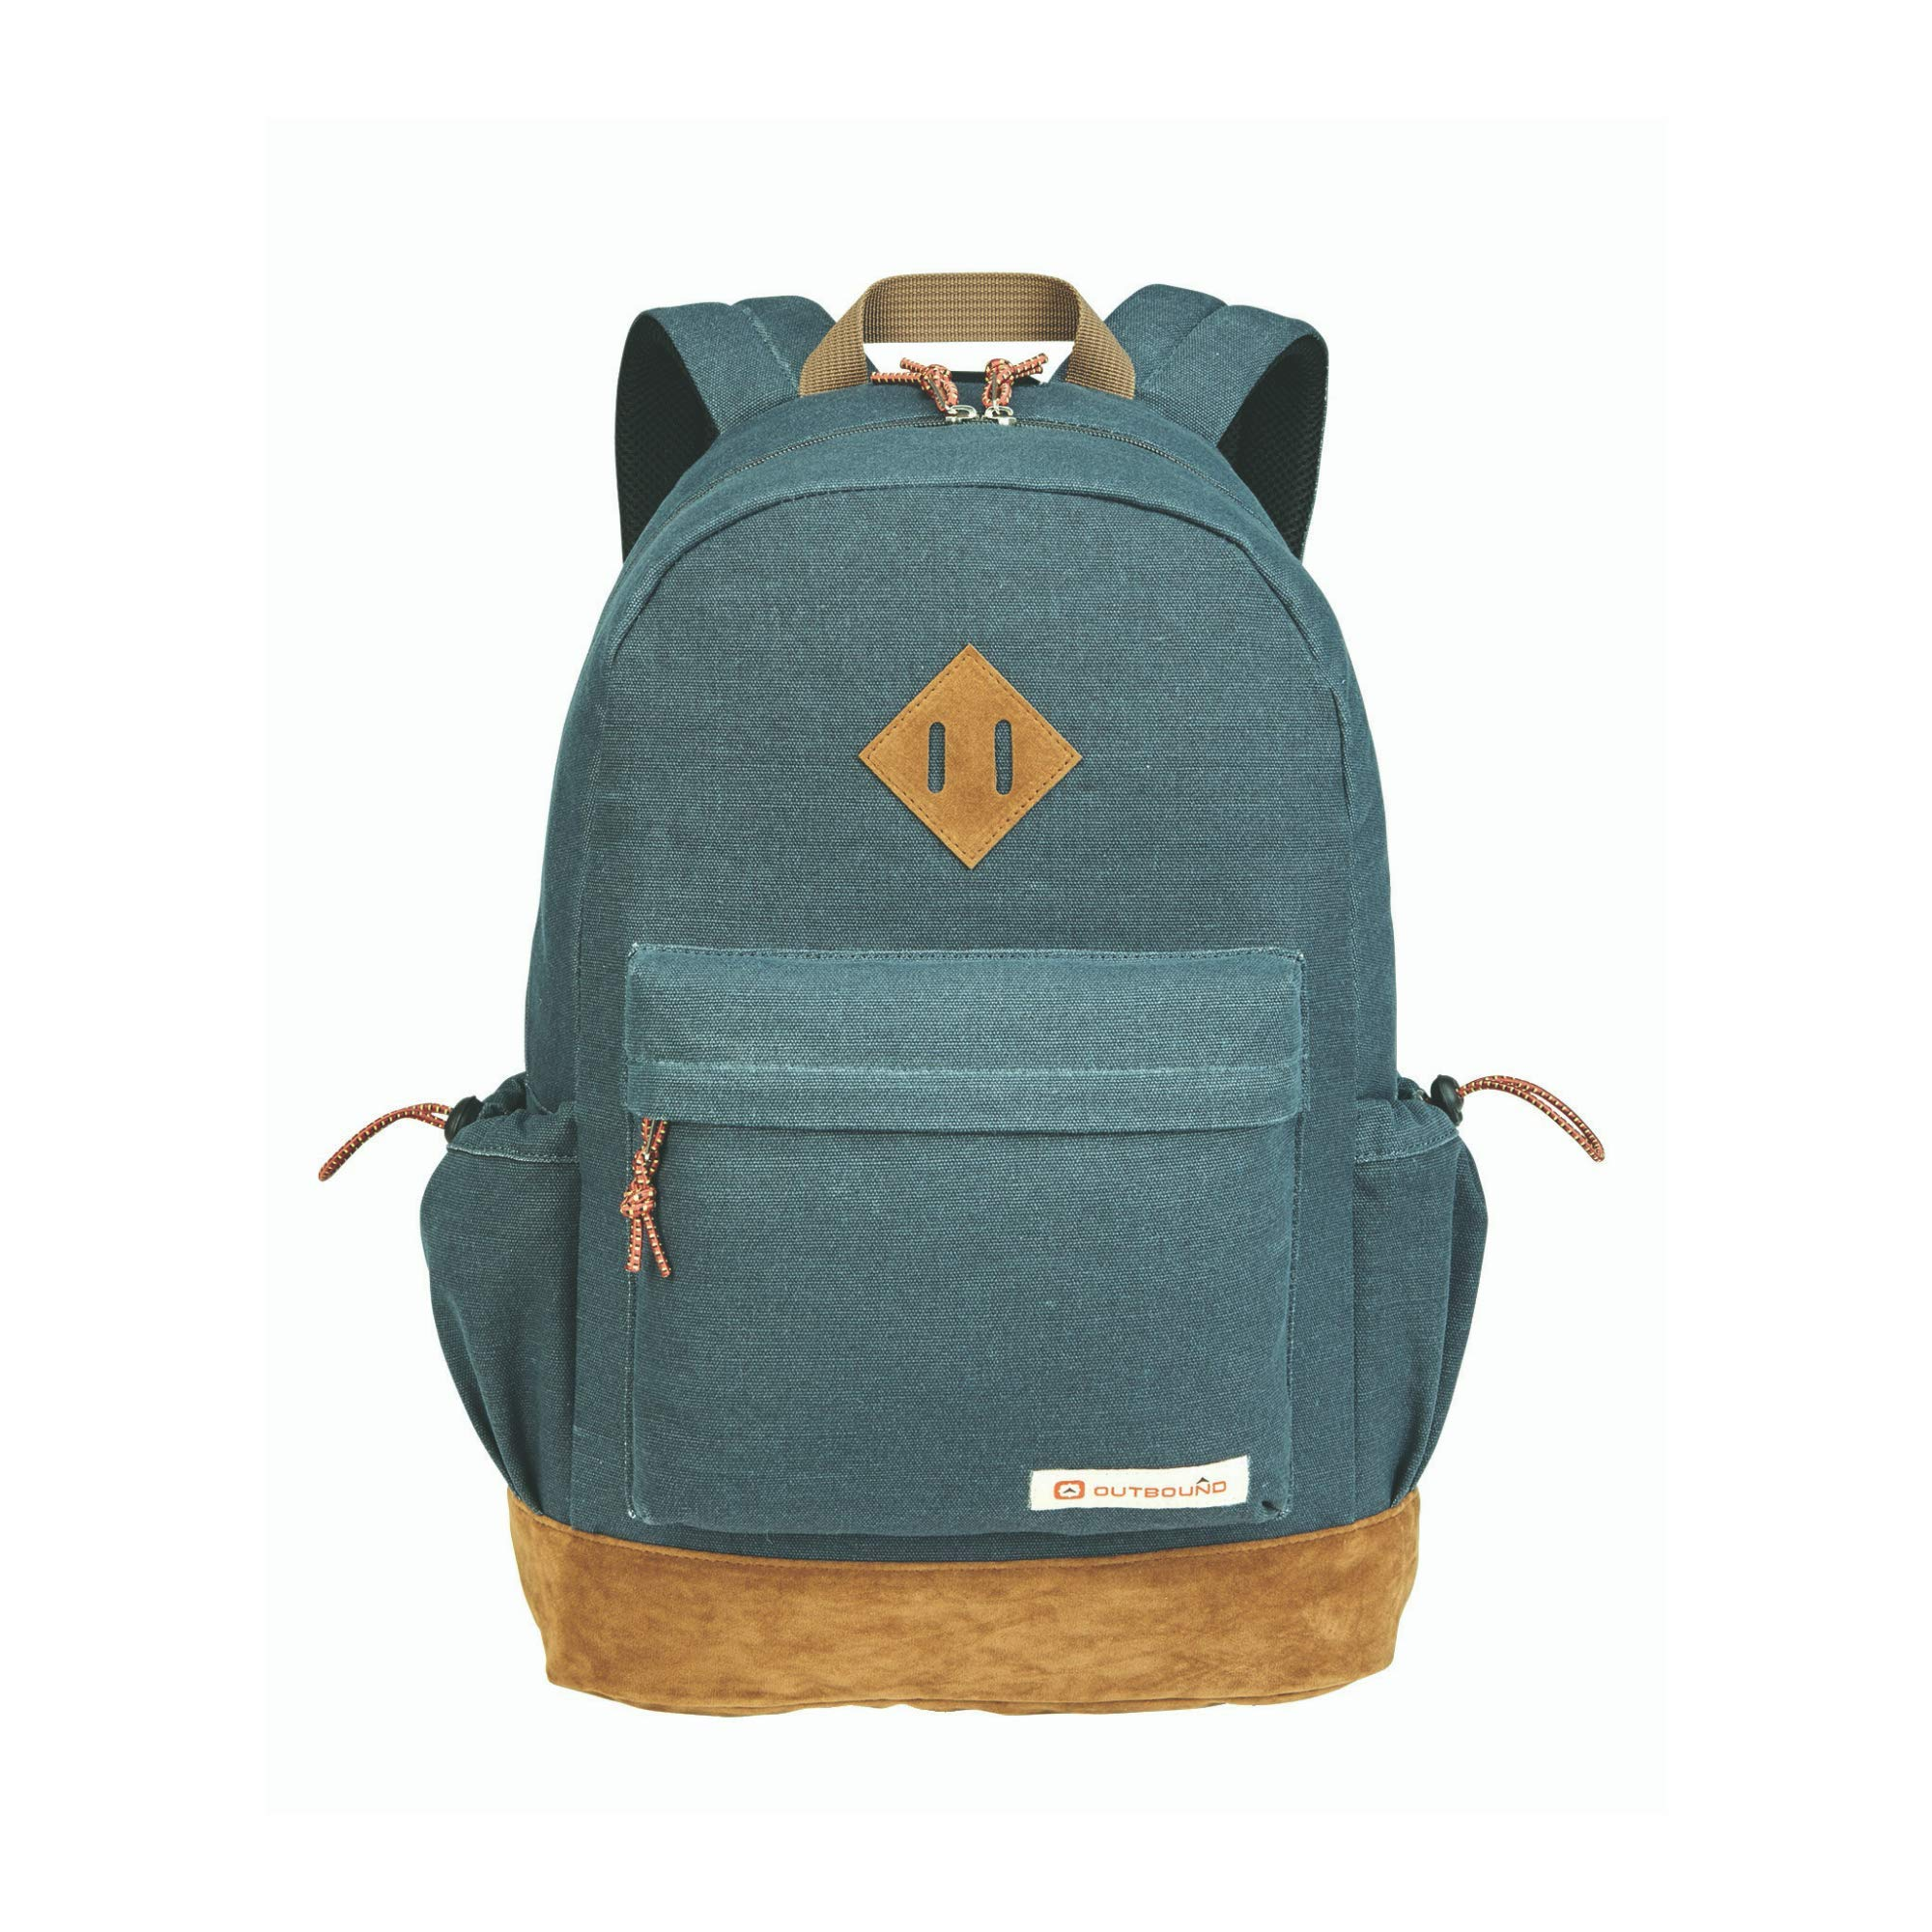 Outbound Canvas Backpack | School Backpack for Boys and Girls | Perfect for Kids, Students or Everyday Use | 17.7 Inch | Gray by OUTBOUND